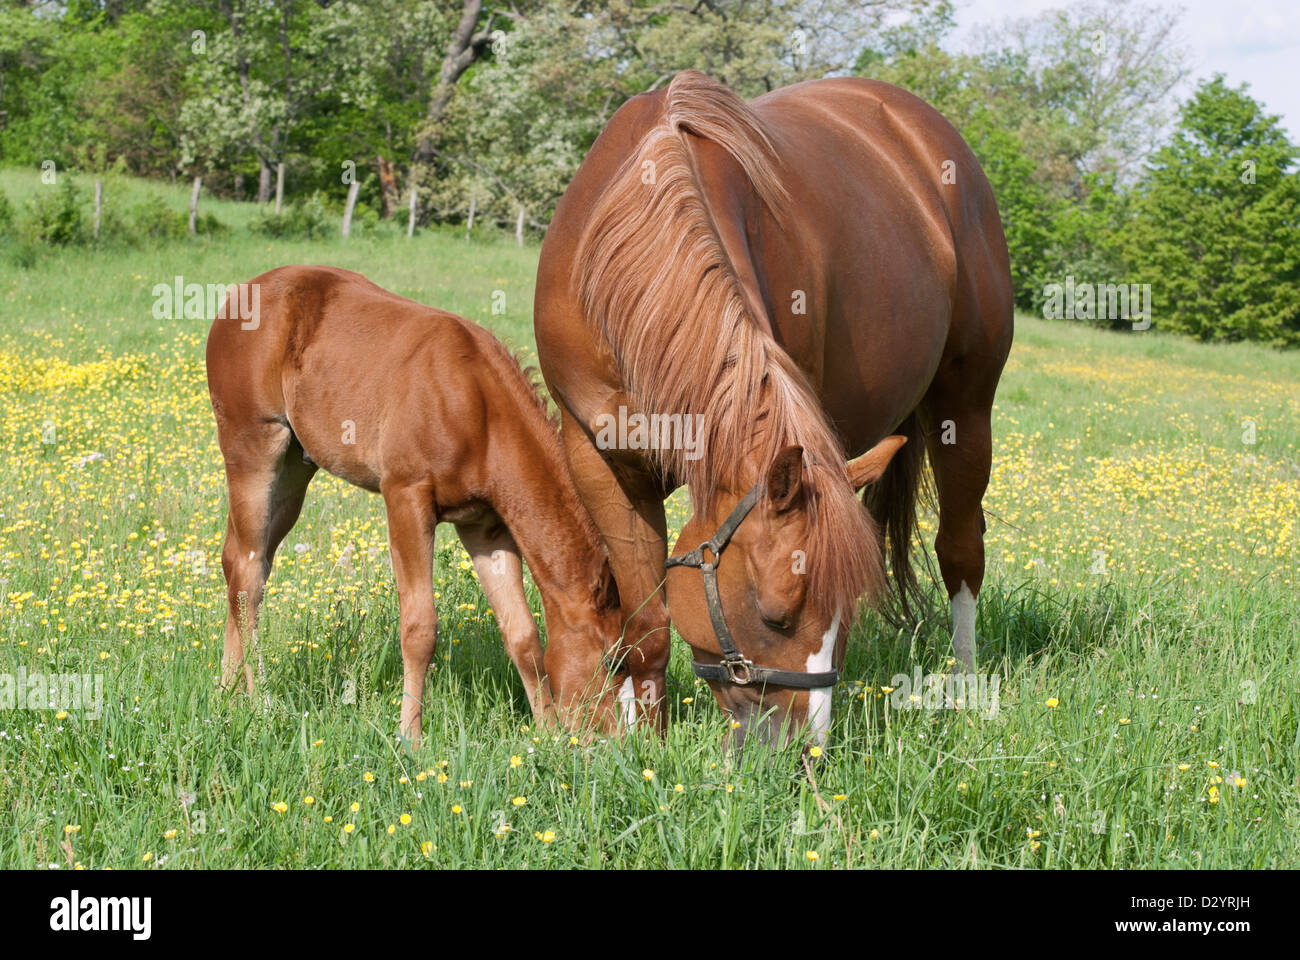 Horses grazing in spring buttercup field, a mare and her young foal baby, purebred quarter horses. - Stock Image